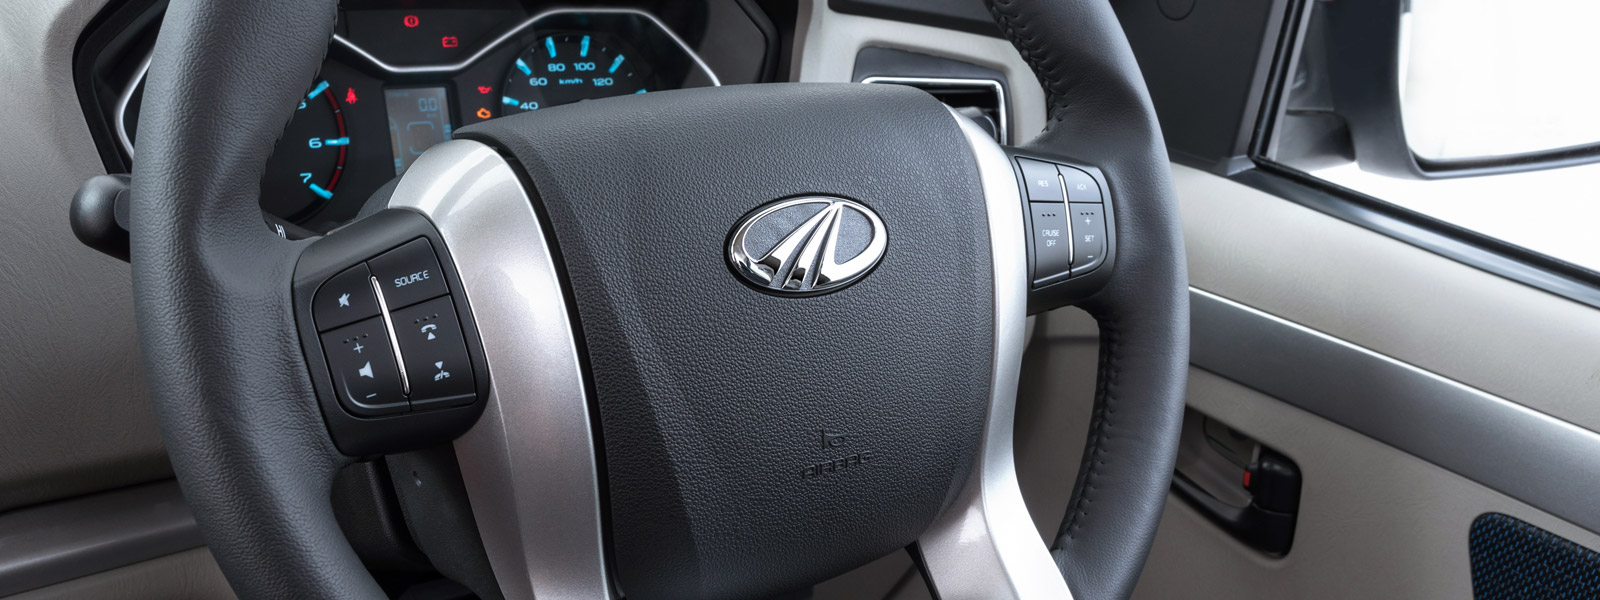 Steering-mounted controls for phone, audio, and cruise function